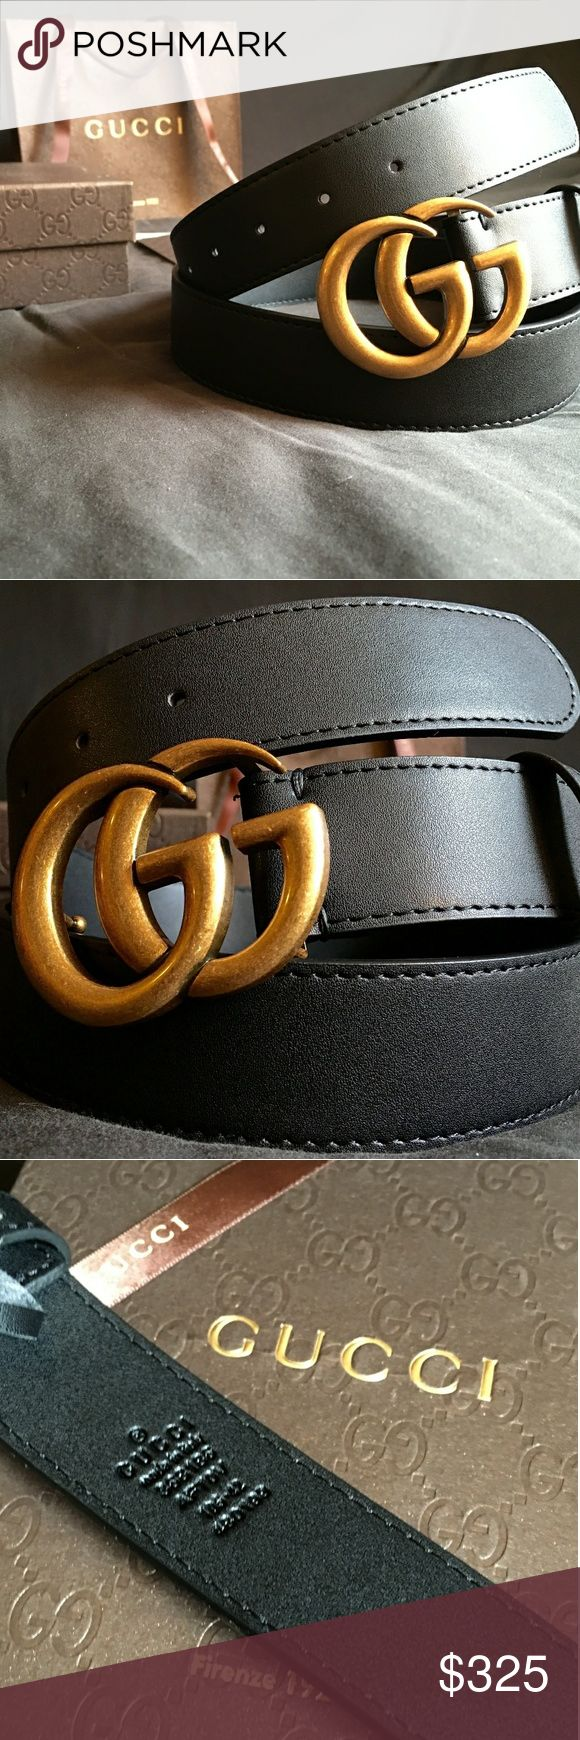 """Gucci Double G Belt!!! Gucci GG Belt W/Antique Brass Double G Buckle!!!  Brand New!!!  Unisex....For Man Or Woman!!!  Size Available - 30"""", 32"""", 34"""", 36"""", 38"""", 40"""", 42""""!!!  Includes Gucci Belt, Gift Box, Dust Bag, Ribbon, Etc!!!  Great Gift Idea!!!  Last Available!!!  Check My Listings For Other Great Items!!!              Ignore: Gucci gg monogram casual dress belts men's women's guccissma leather monogram web tiger bee embossed panther wool cable knit blooms supreme print angry cat ufo…"""